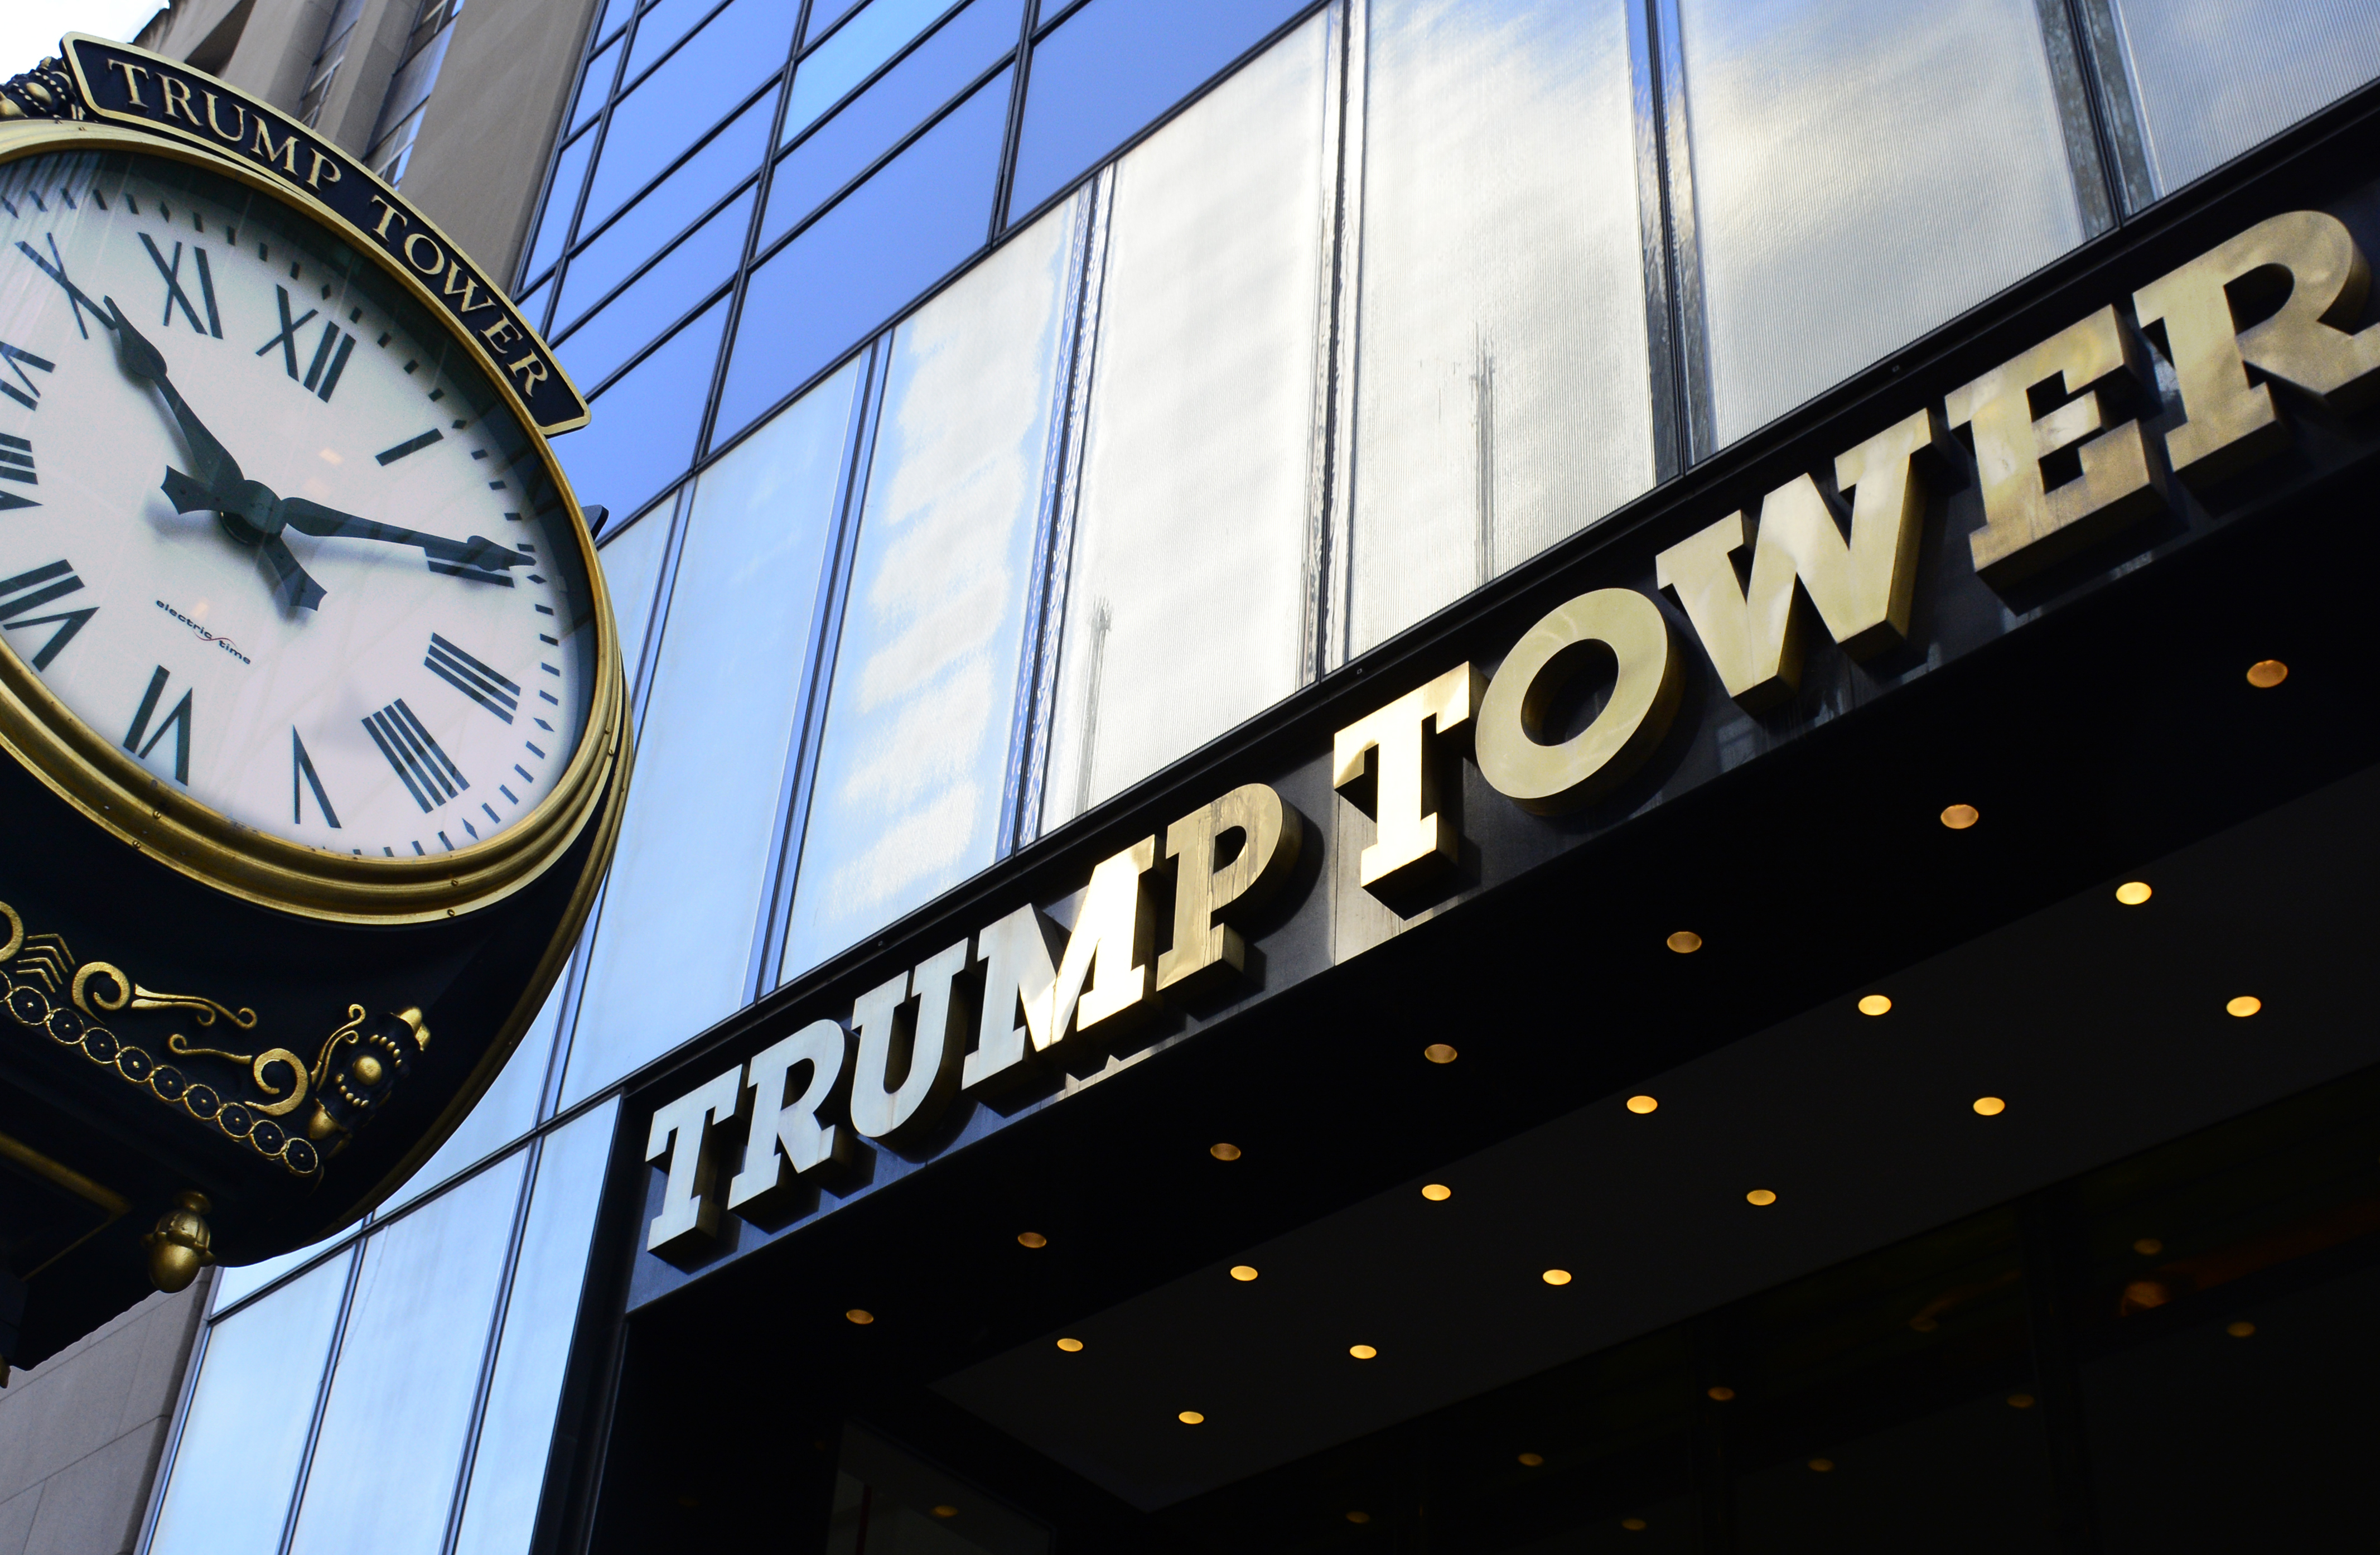 The public Fifth Avenue entrance to Trump Tower on Fifth Avenue in Midtown Manhattan, New York, New York.